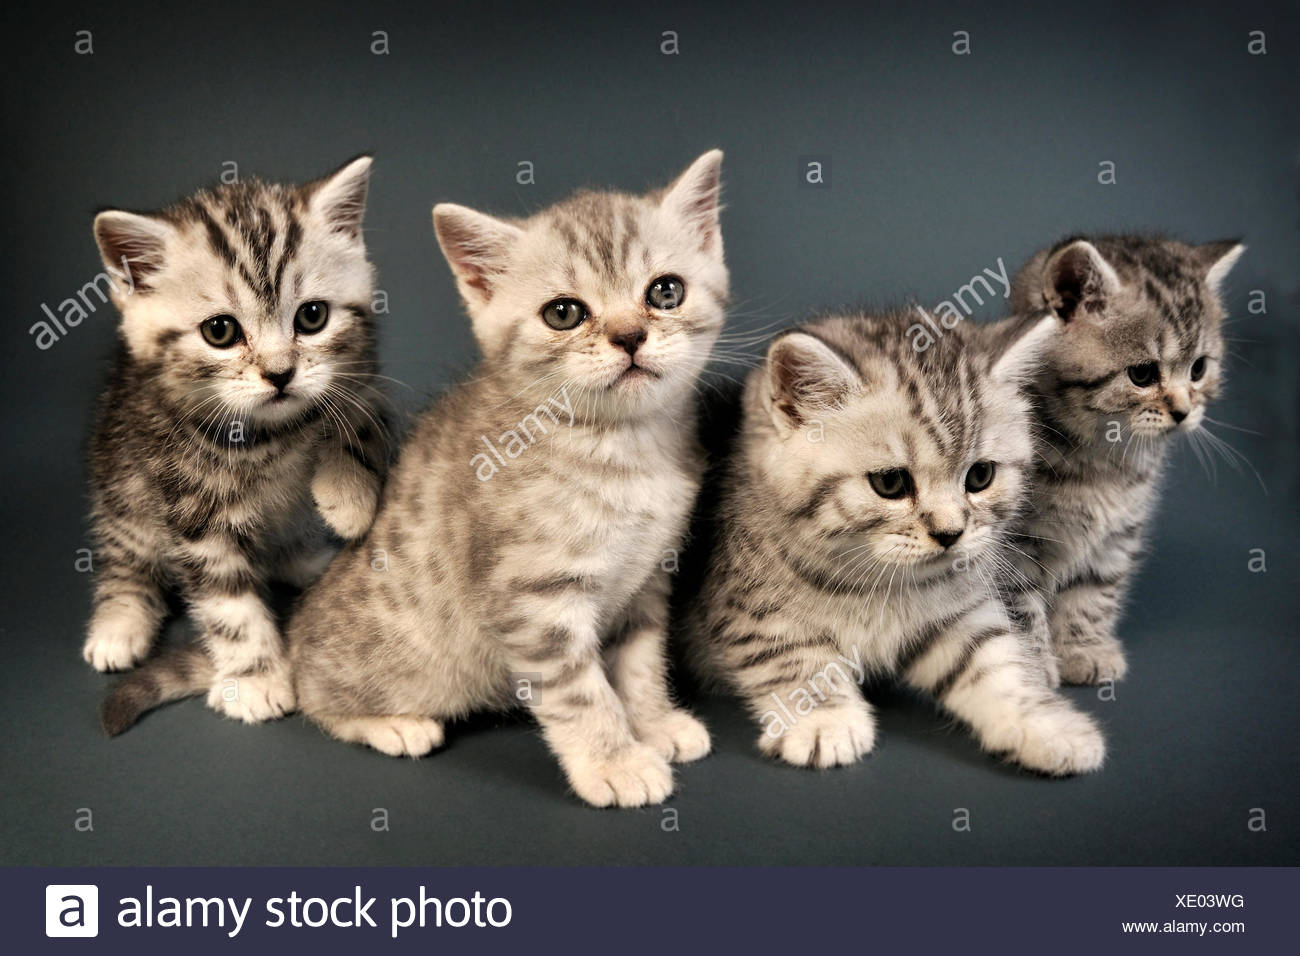 british shorthair kittens adorable animal baby beautiful cat charming companion cuddly cute domestic feline friend fur furry kitten kitty little loving mammal nice pet play puss pussycat small sweet tiger whiskers young  - Stock Image